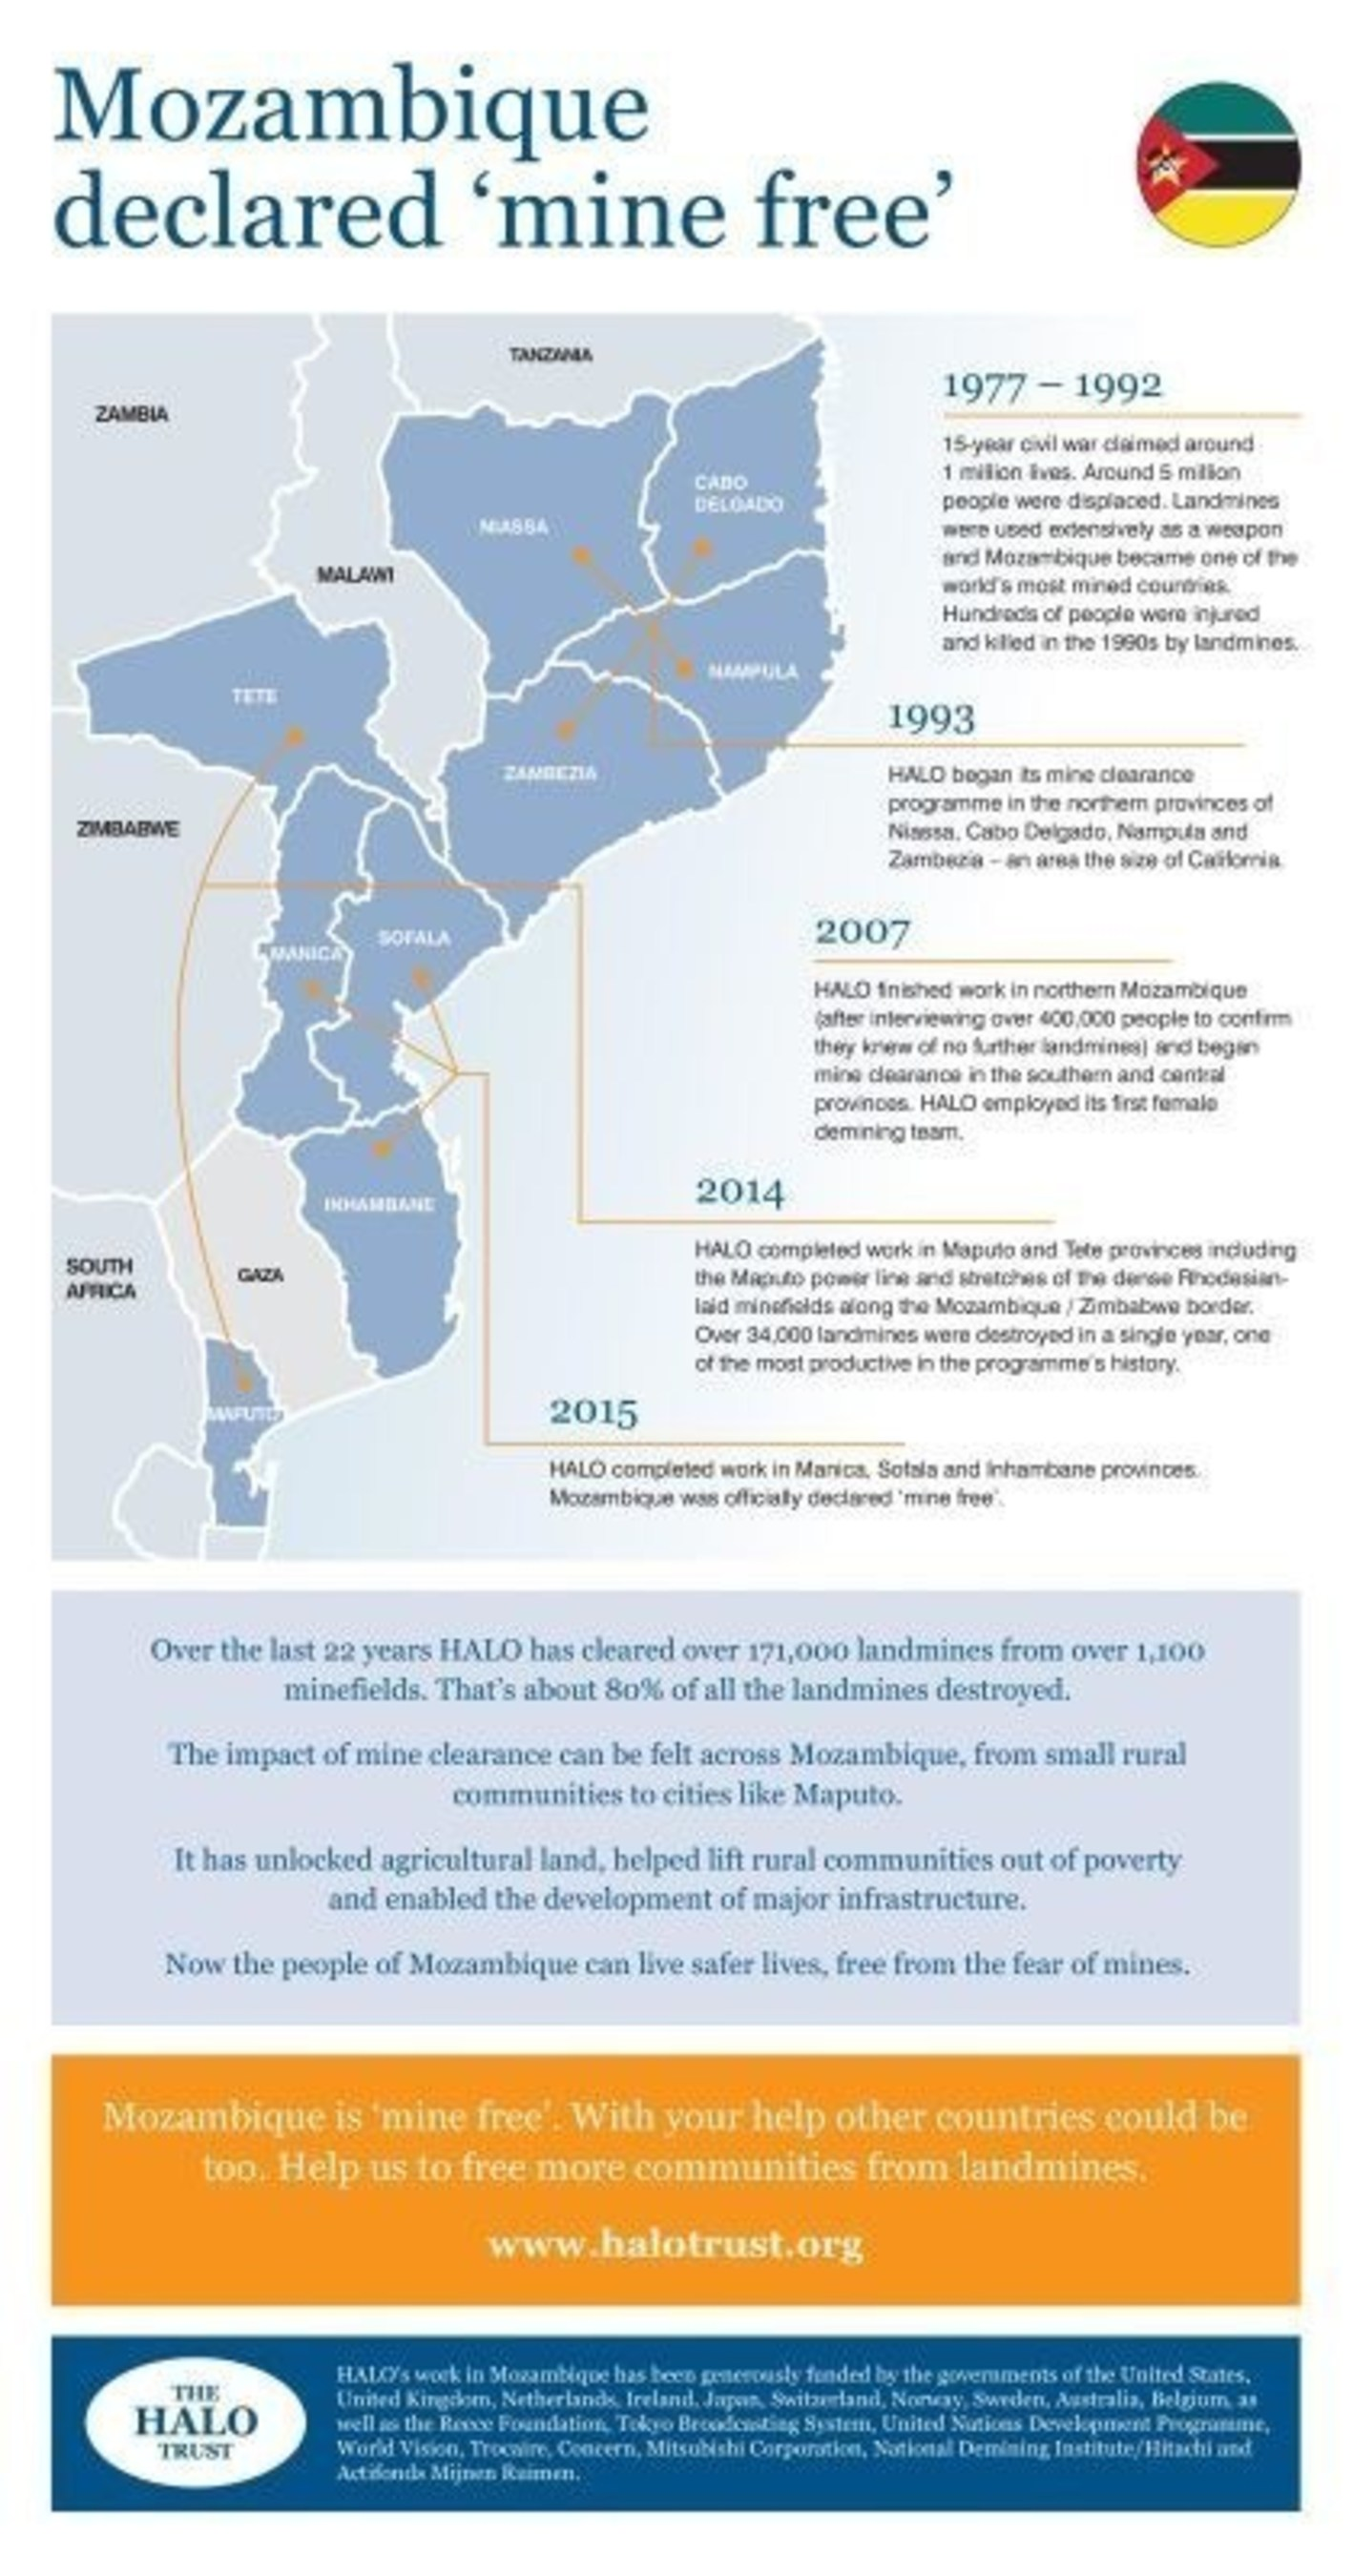 A timeline infographic that shows HALO's contribution to 'mine free' Mozambique, with details of ...